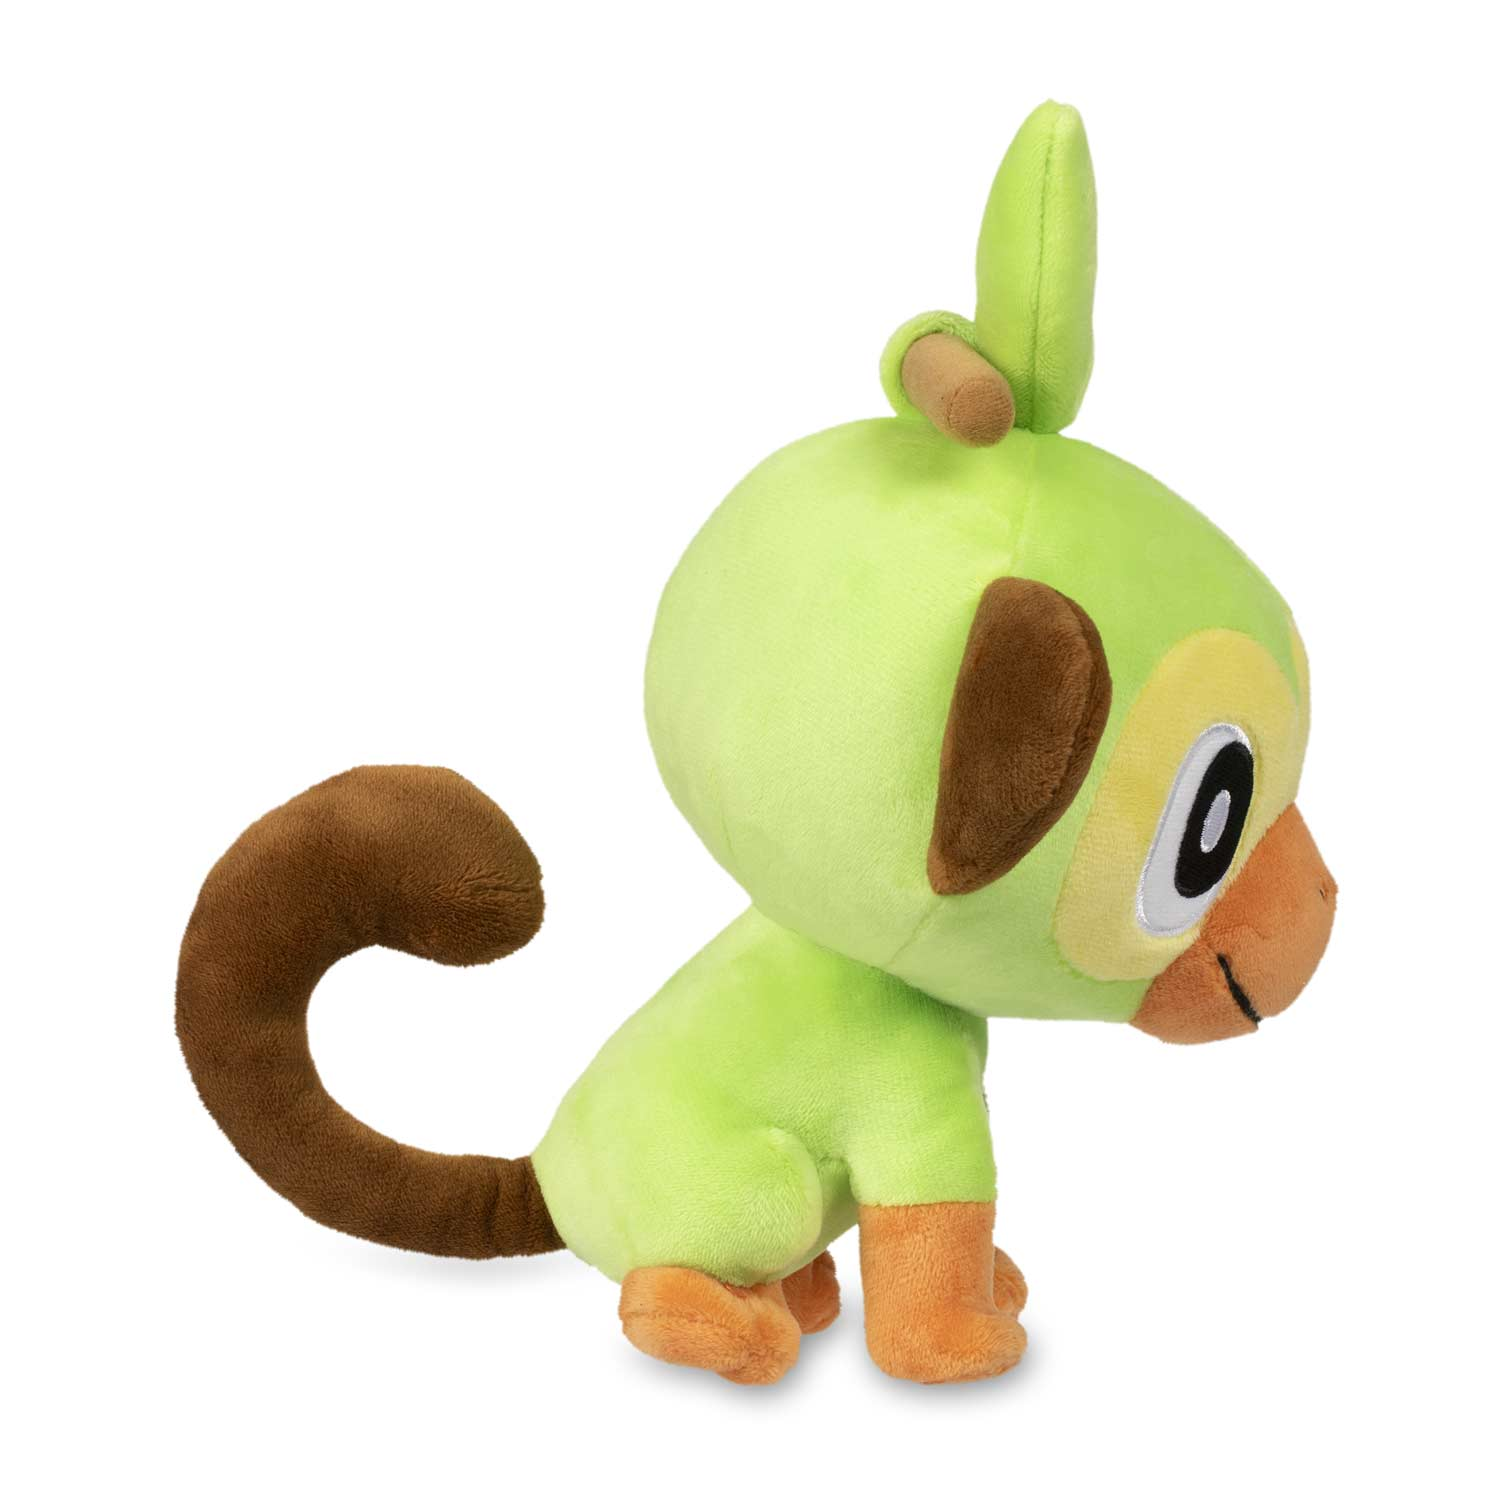 Grookey Poke Plush 9 In Pokemon Center Official Site You'll receive email and feed alerts when new items arrive. grookey poke plush 9 in